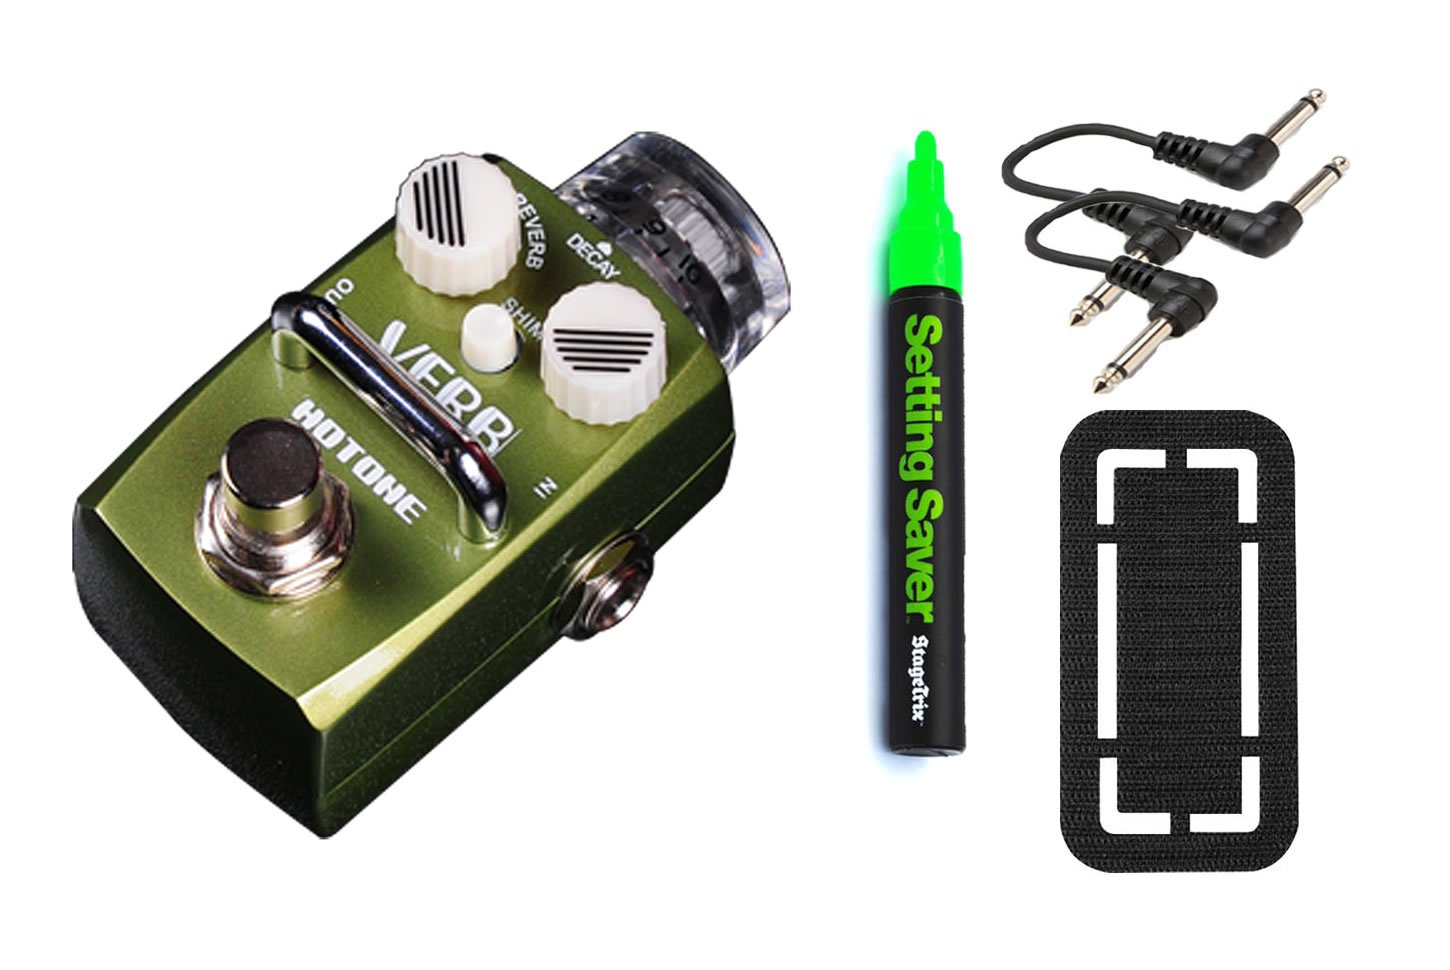 Hotone Skyline Series Stompbox VERB Digital Reverb Pedal Bundle w/ 4 free Items: StageTrix Setting Saver Pen, StageTrix Pedal Fastener, 2x Hosa Patch Cables dobson c french verb handbook